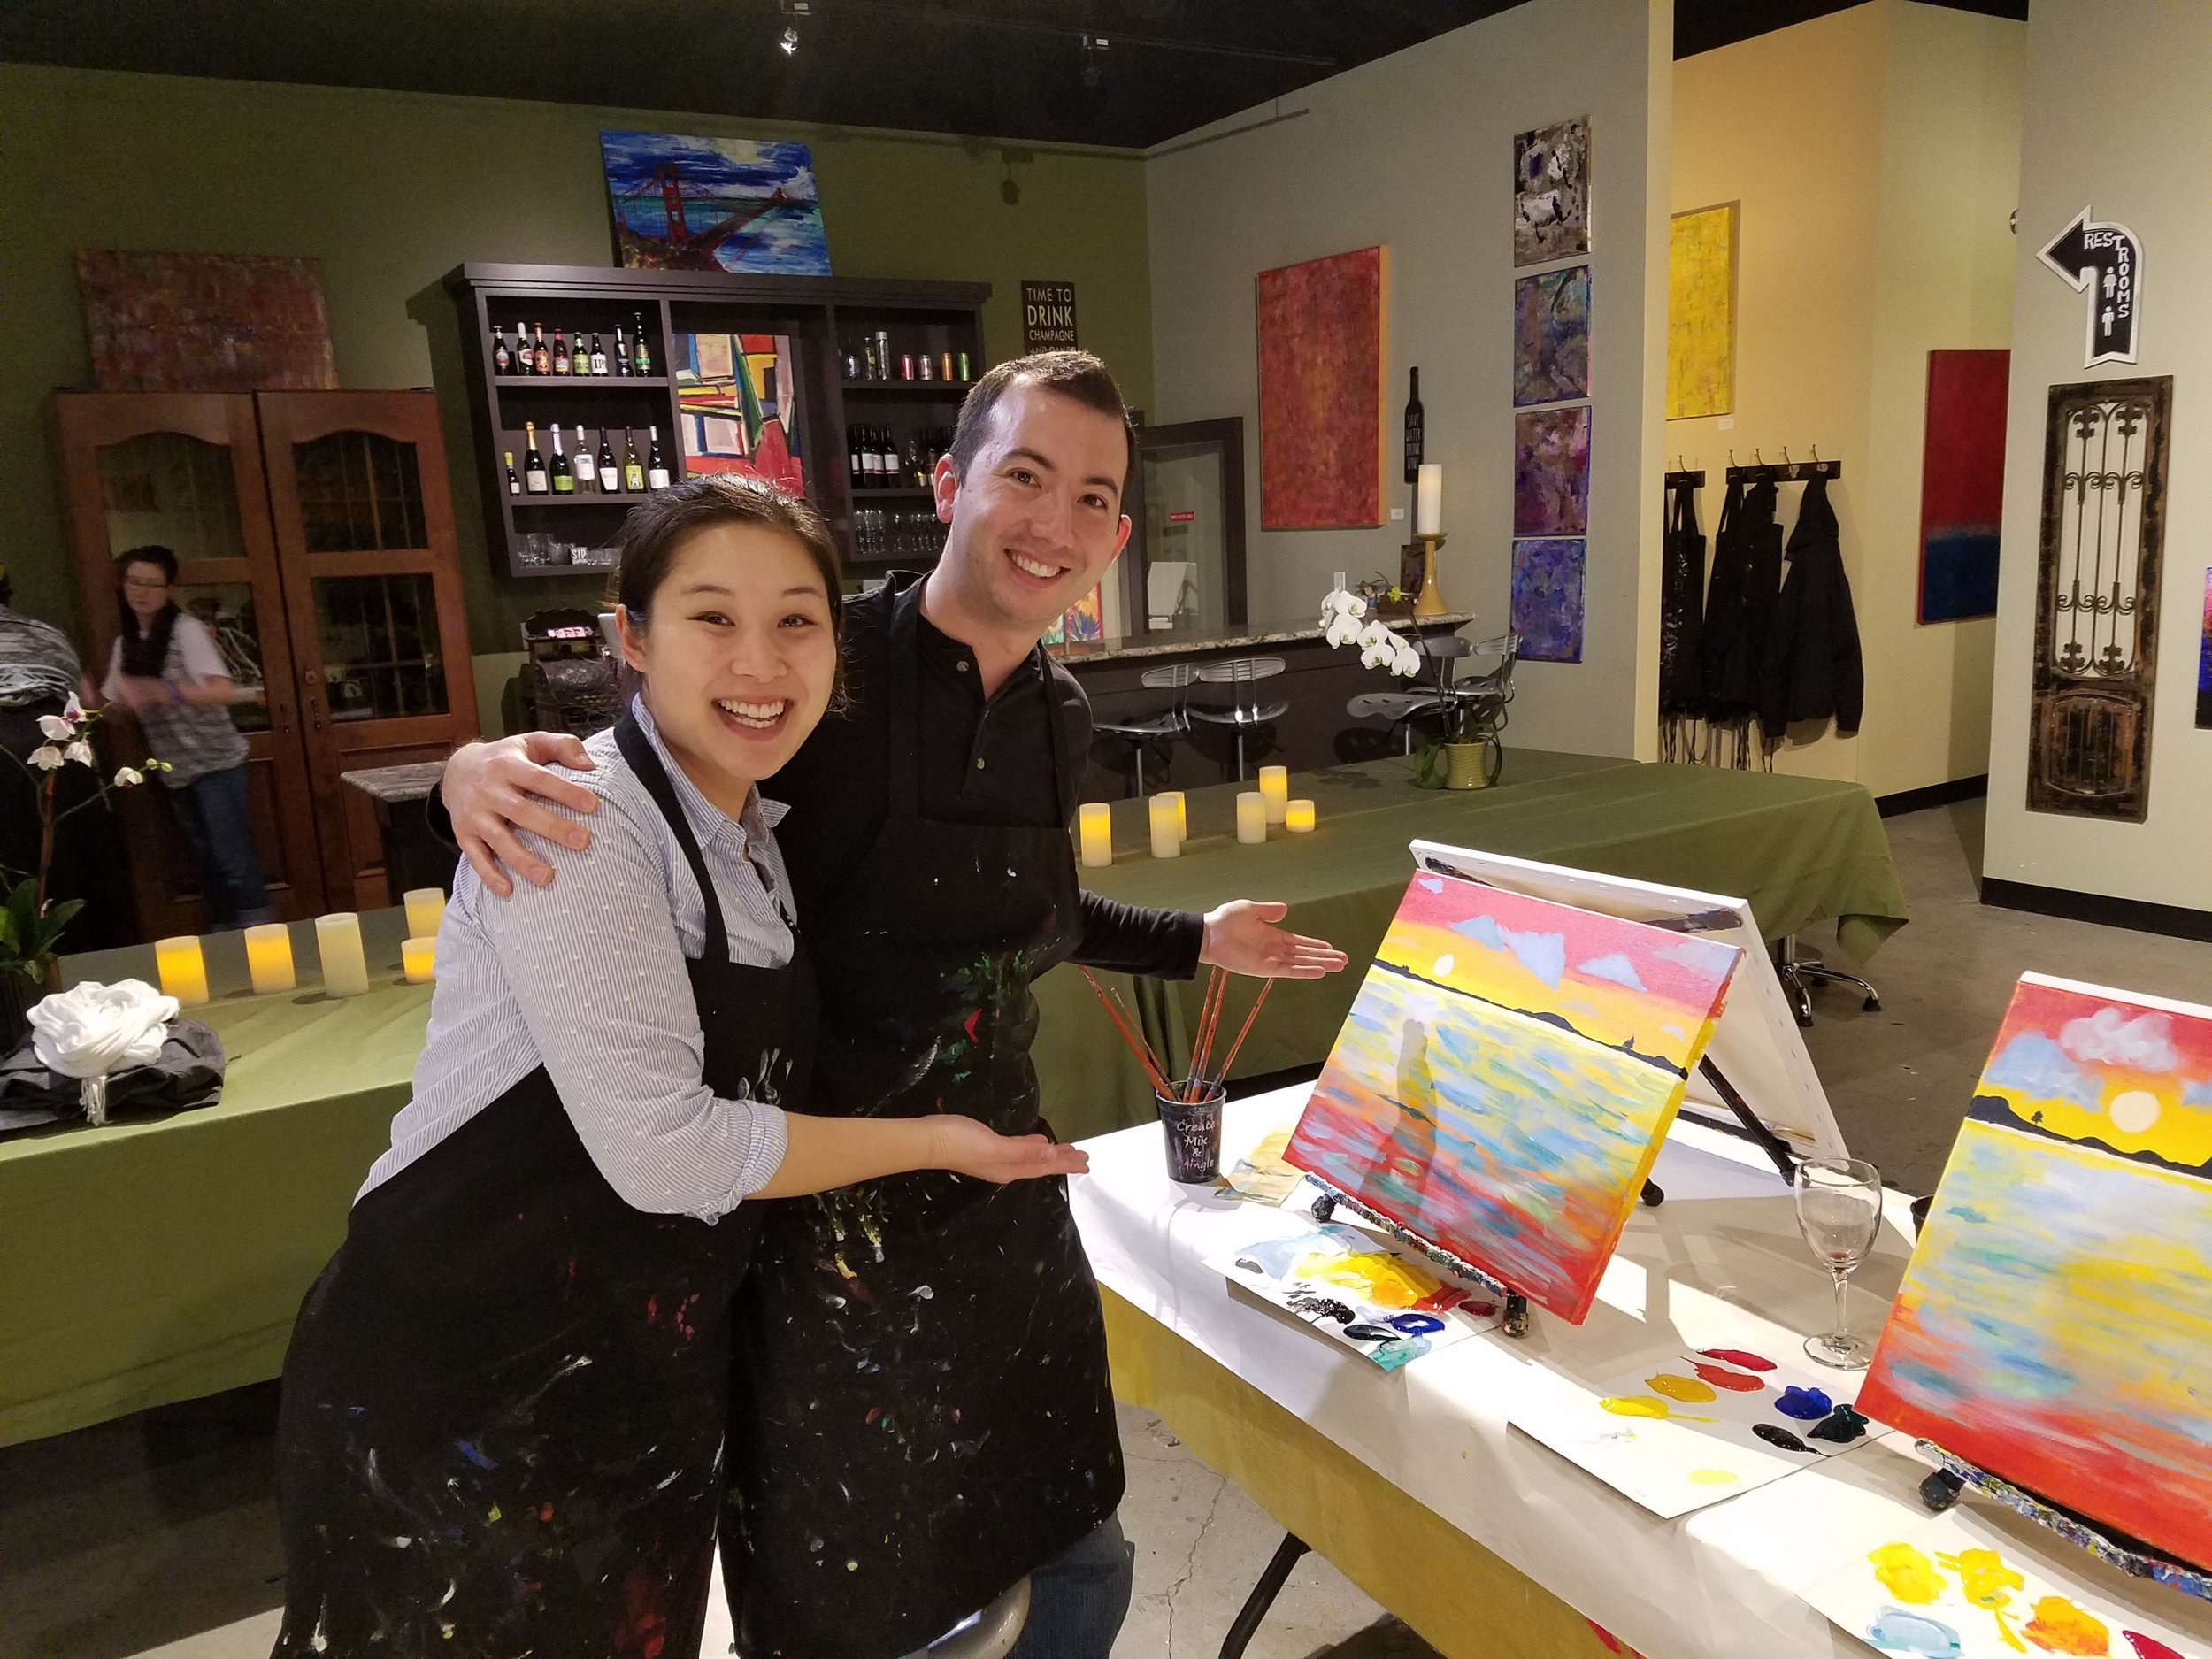 Wendy and Nick next to their paintings